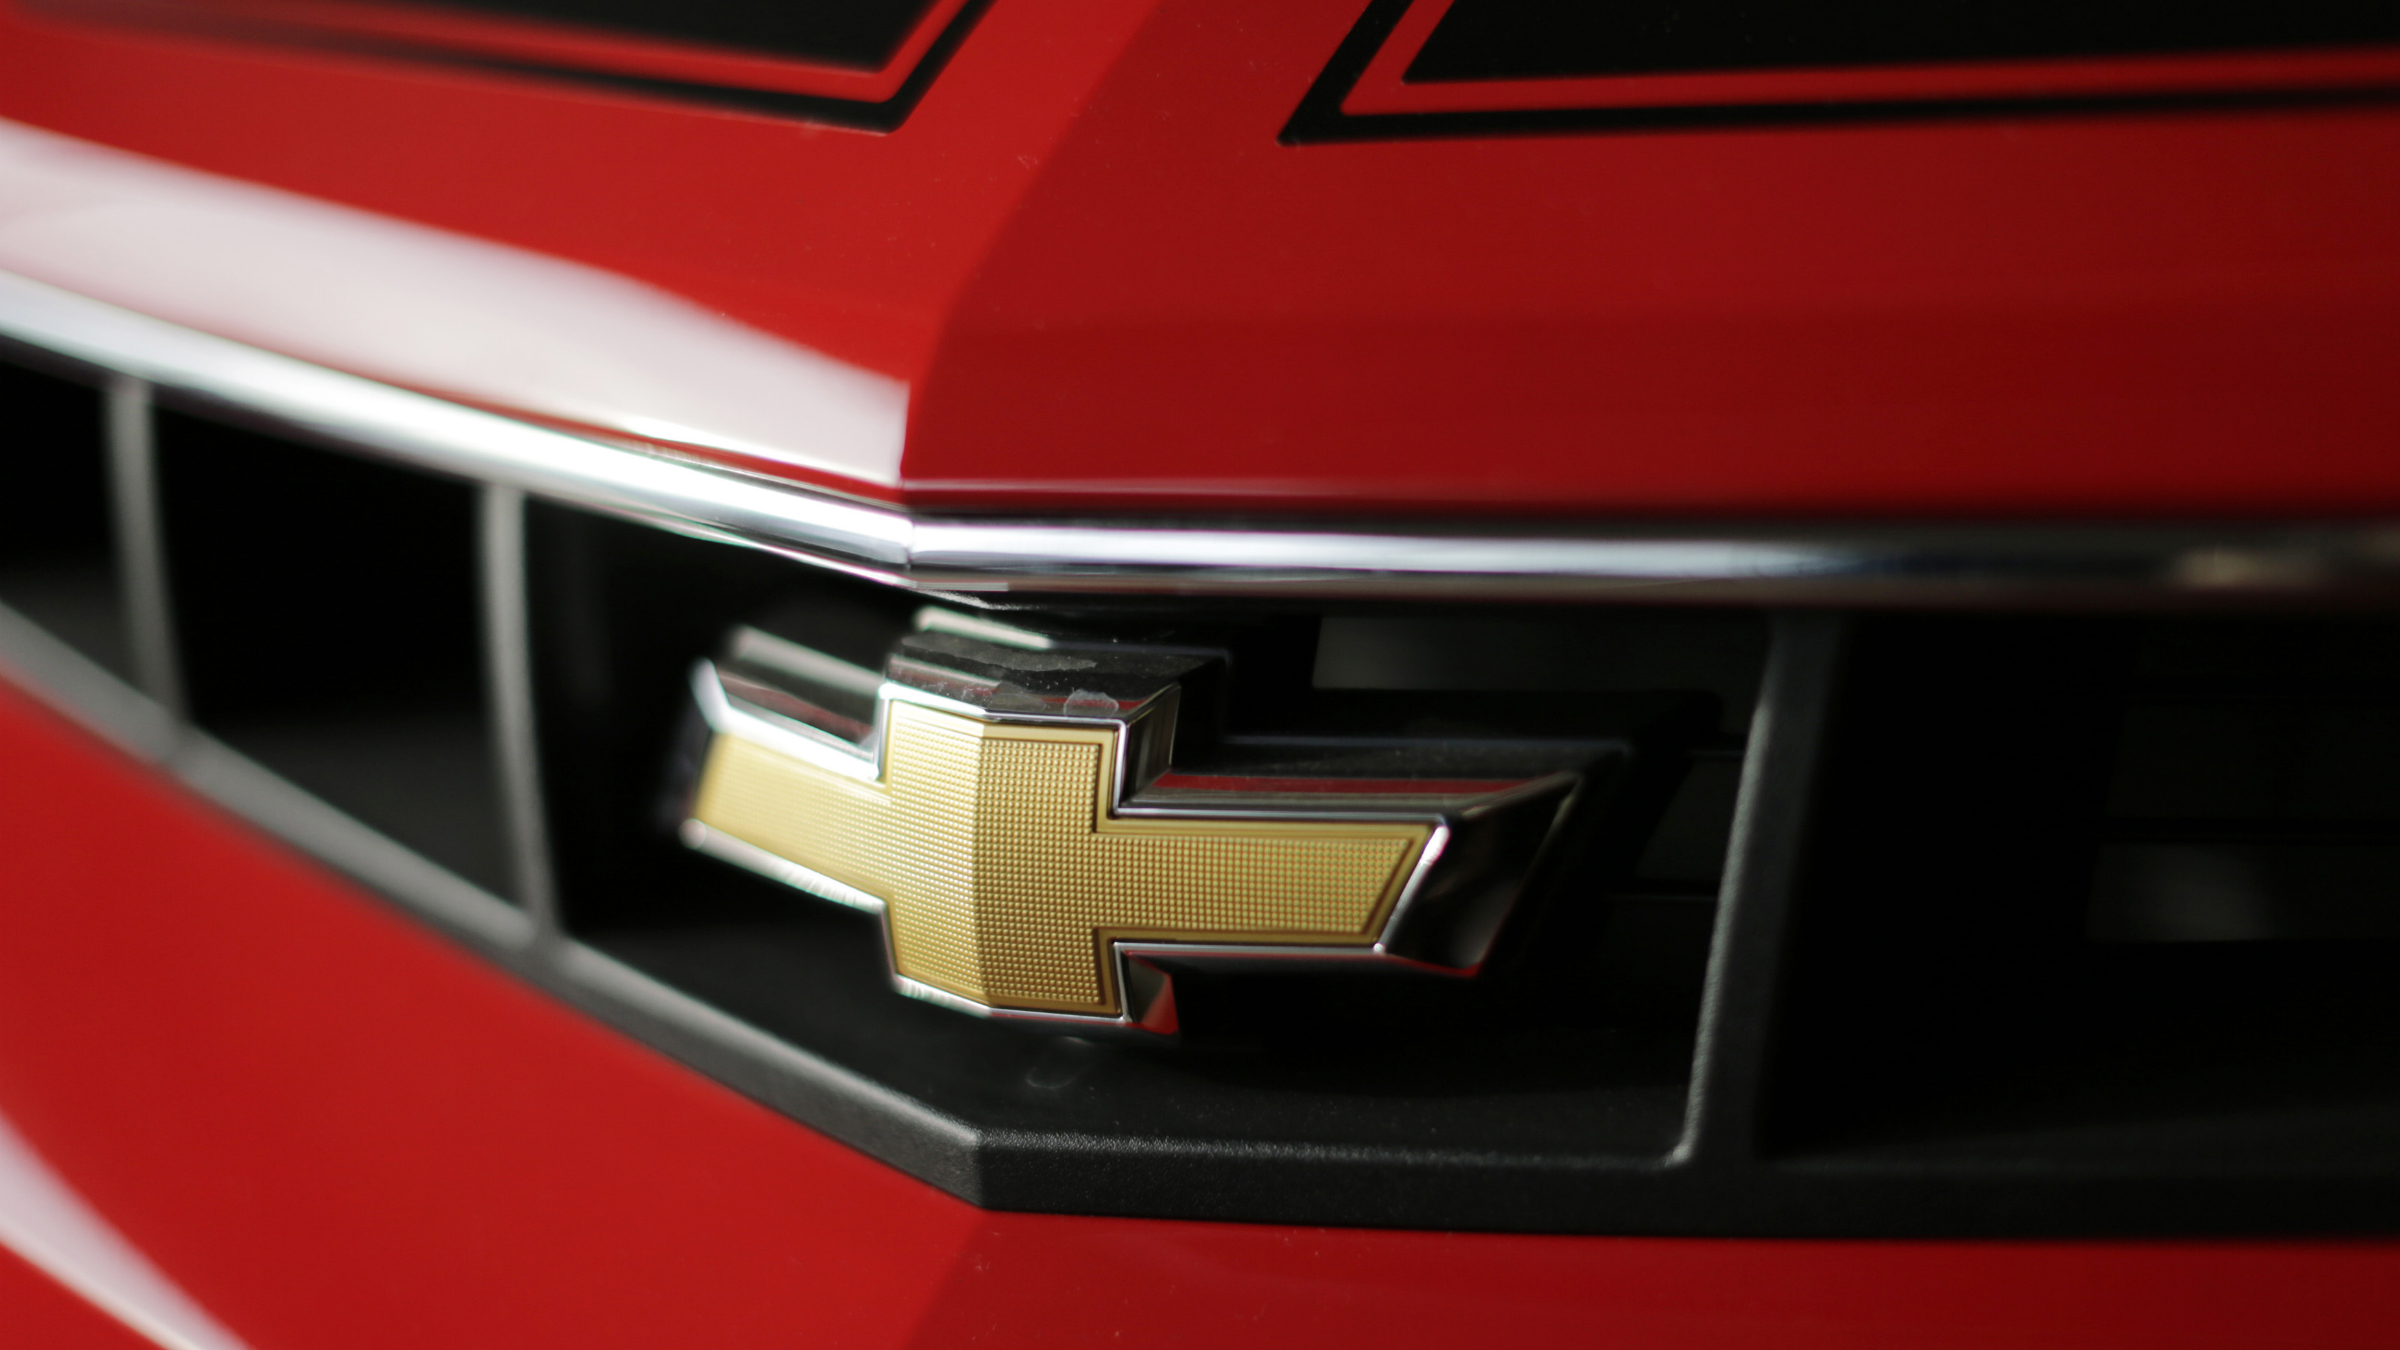 In 2013, hedge funds made big bets on GM brands, such as Chevrolet.